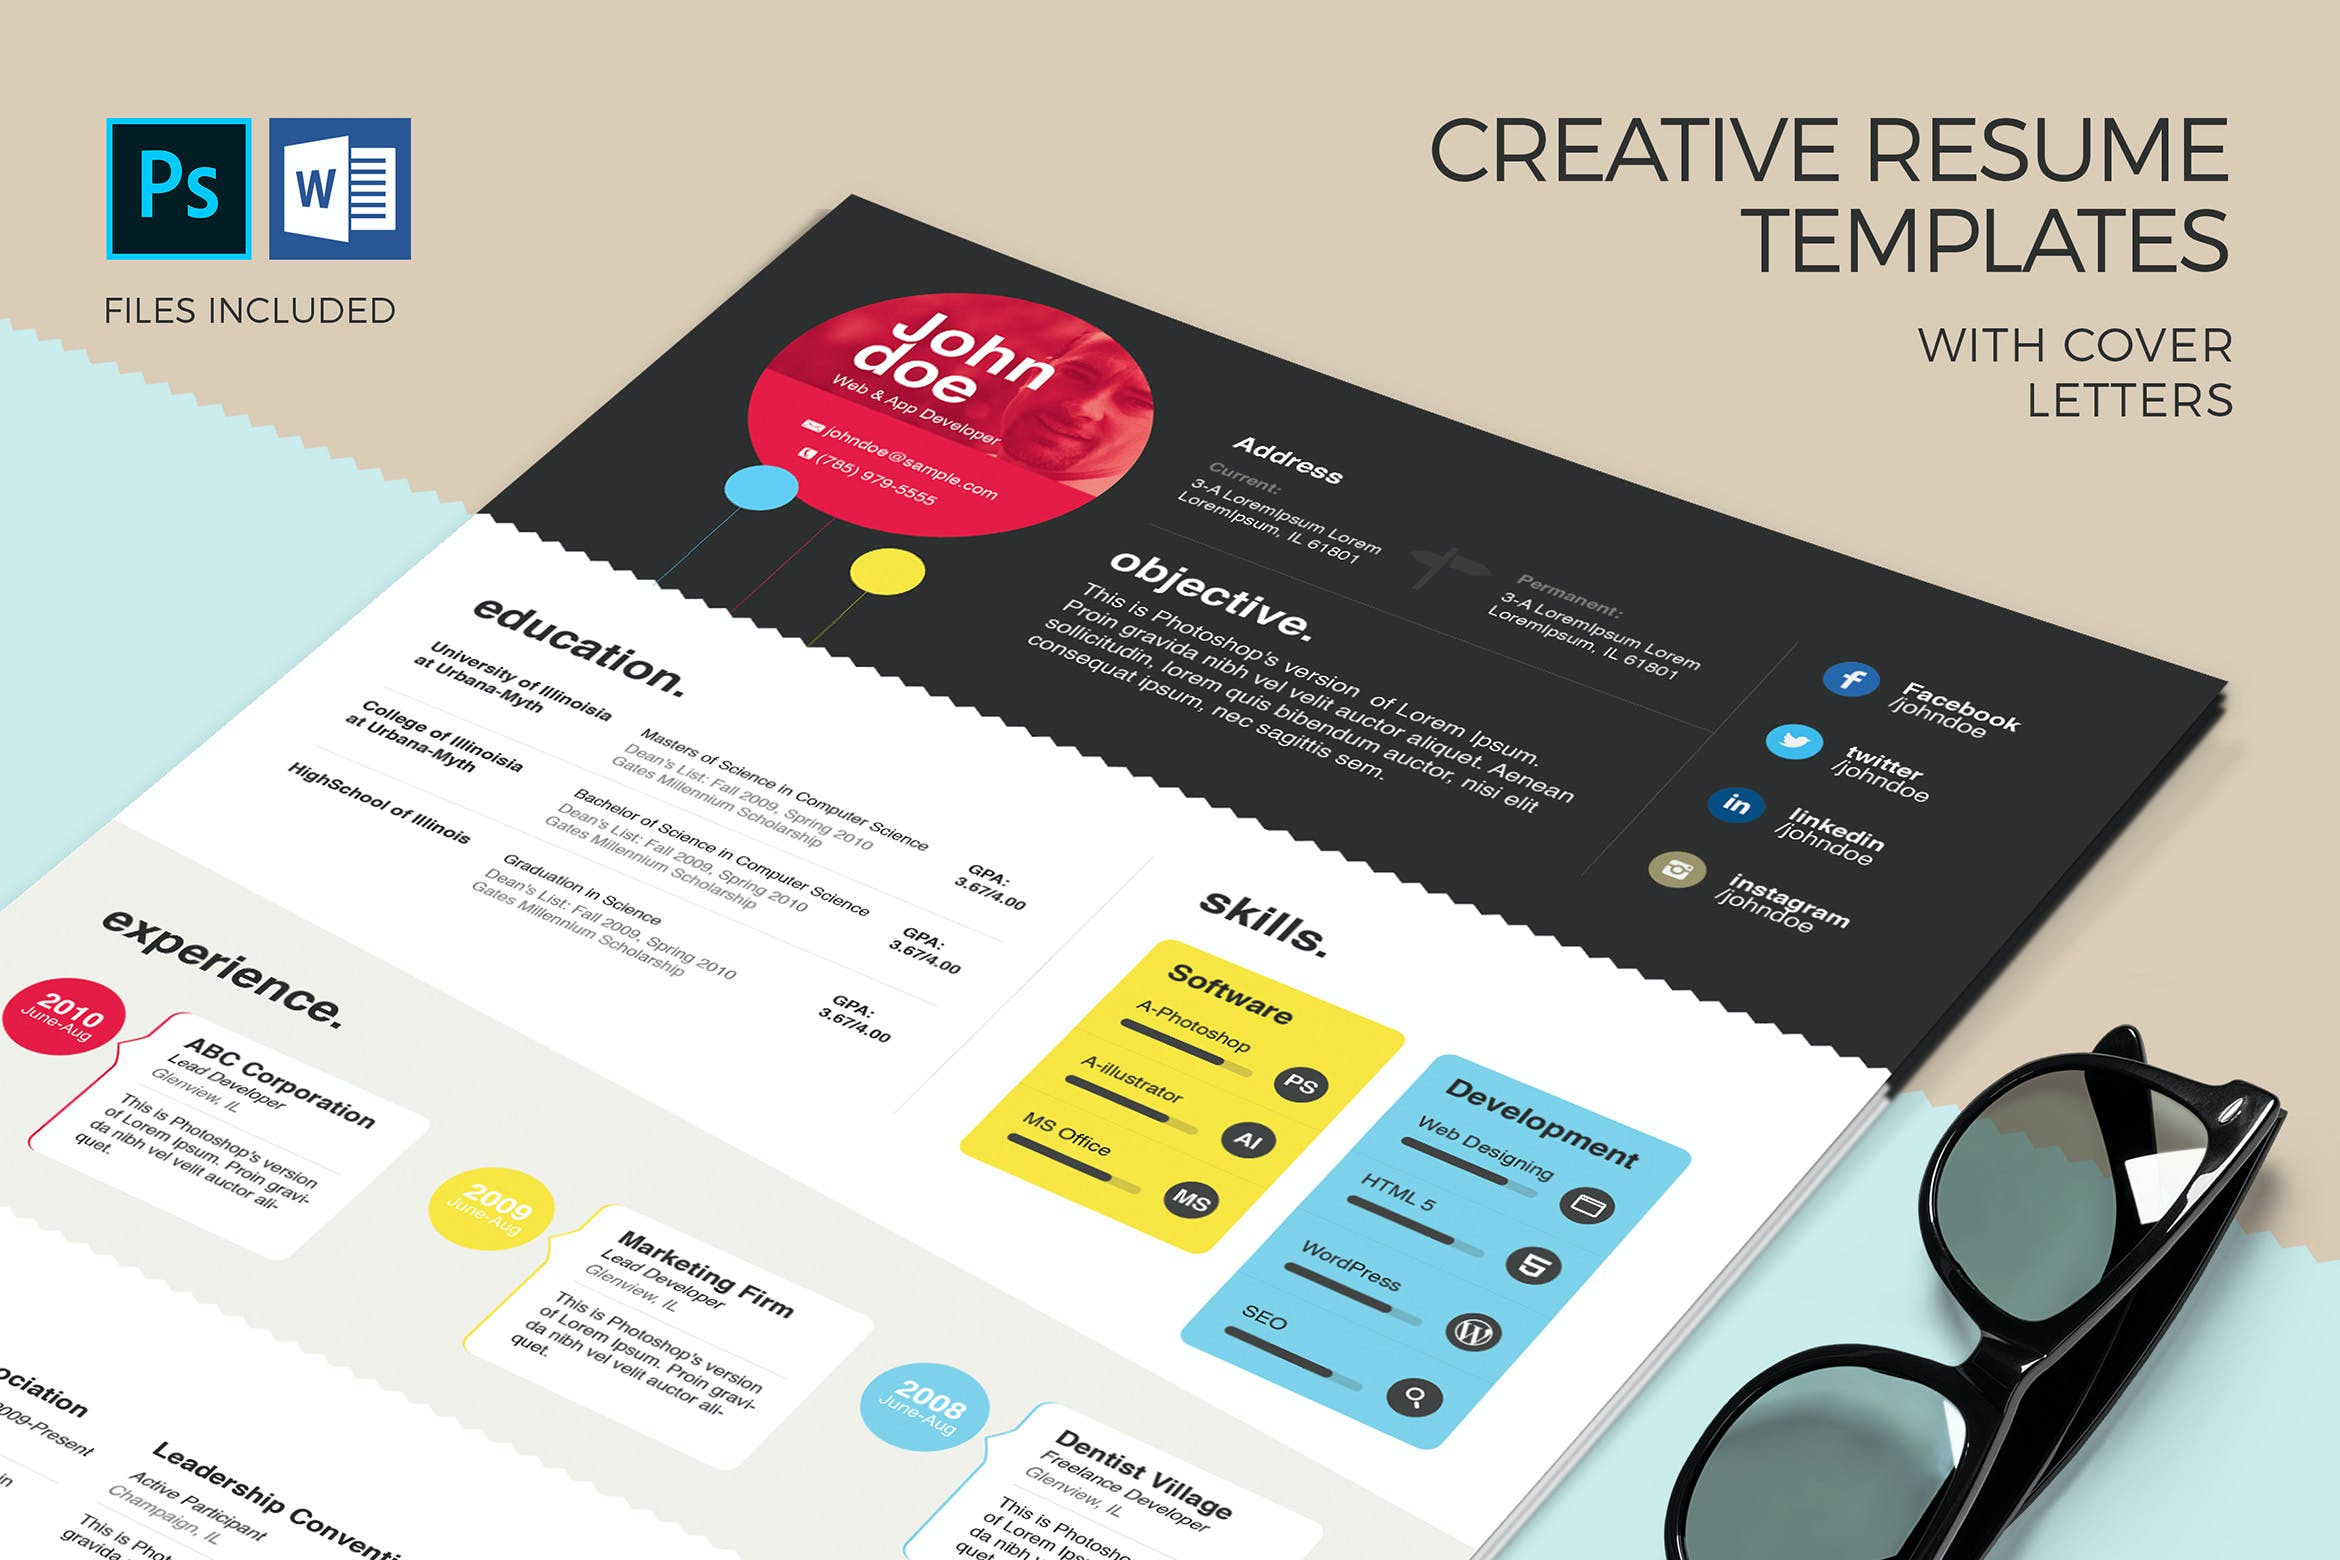 Envato Resume from elements-cover-images-0.imgix.net